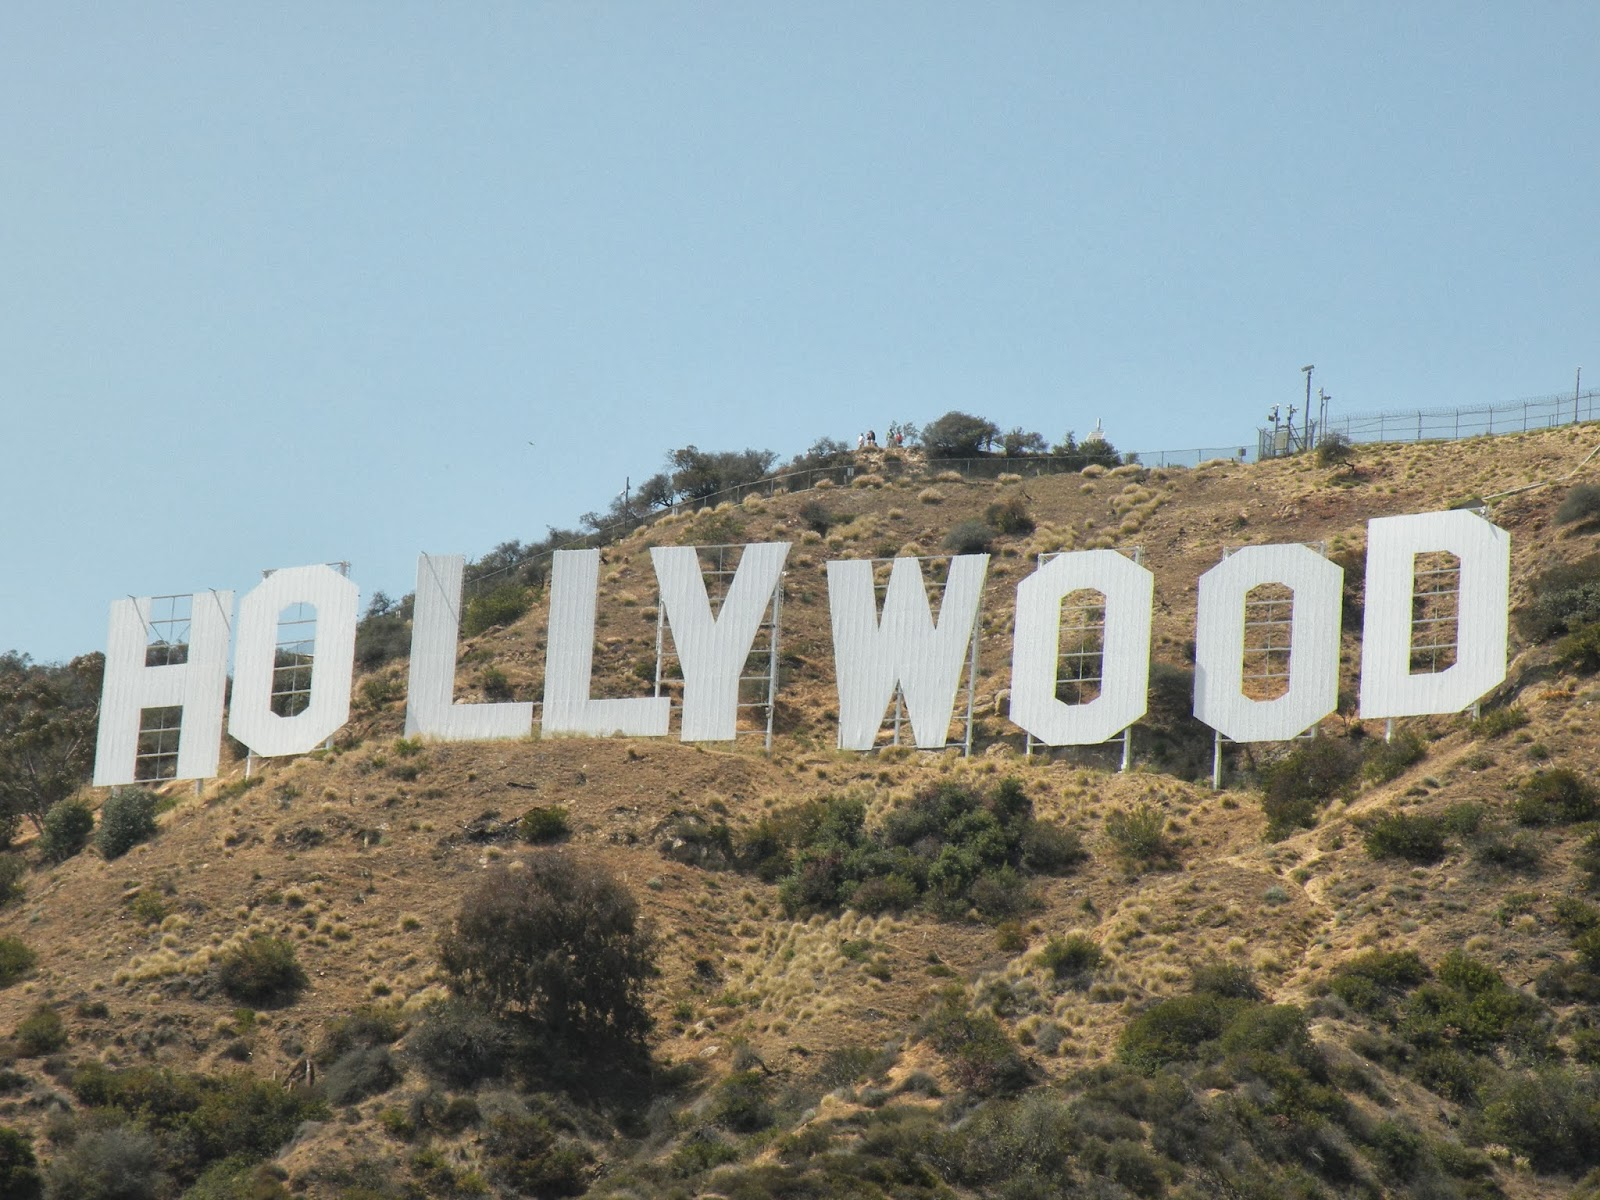 For A Full Story On The Haunting Of Hollywood Sign Please See My Original Post Here